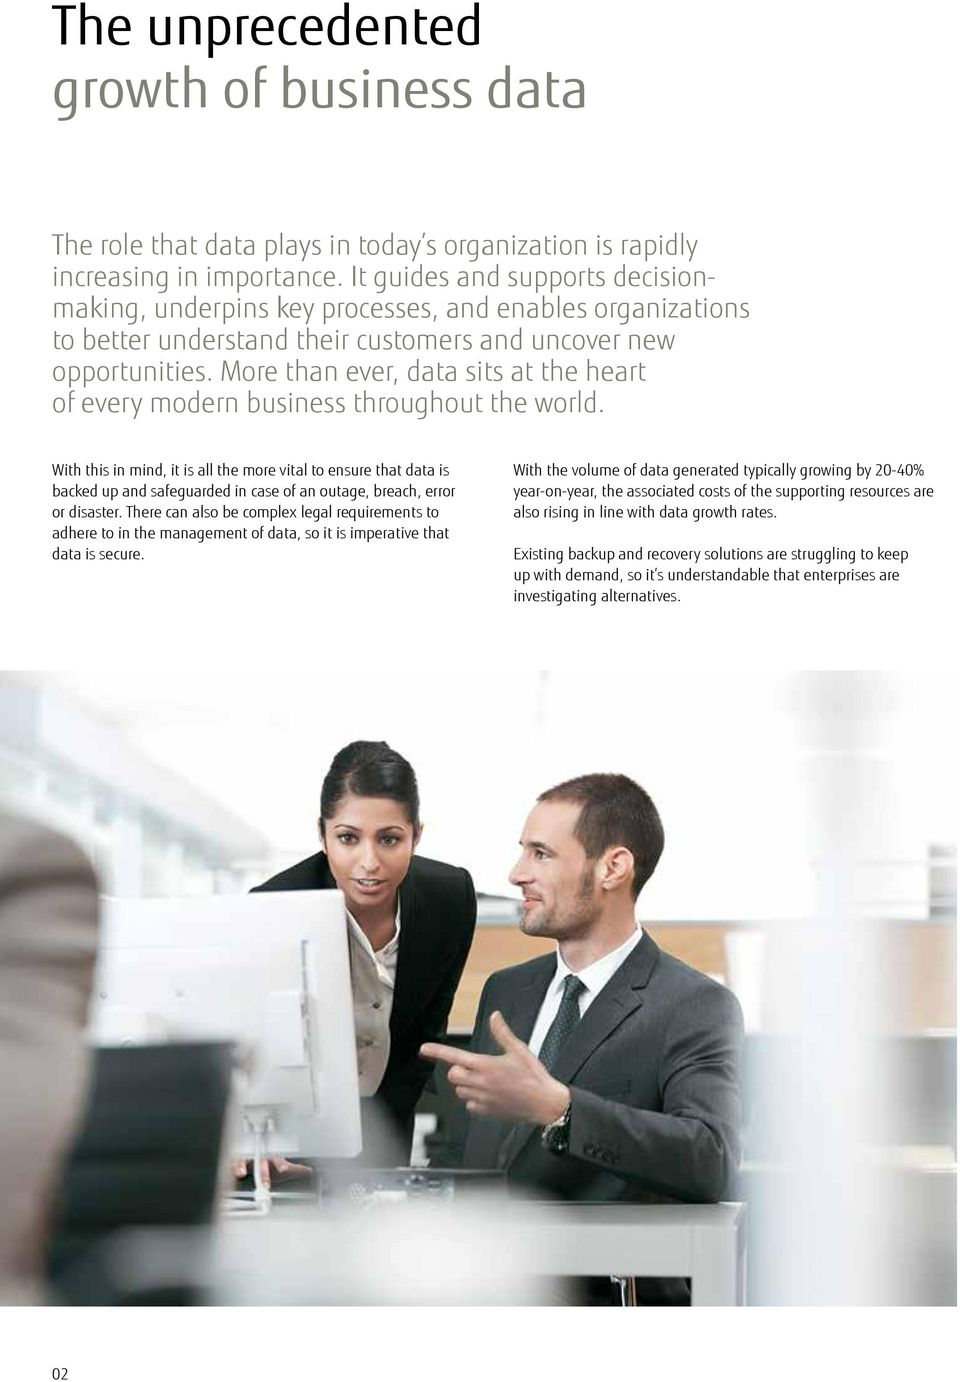 More than ever, data sits at the heart of every modern business throughout the world.